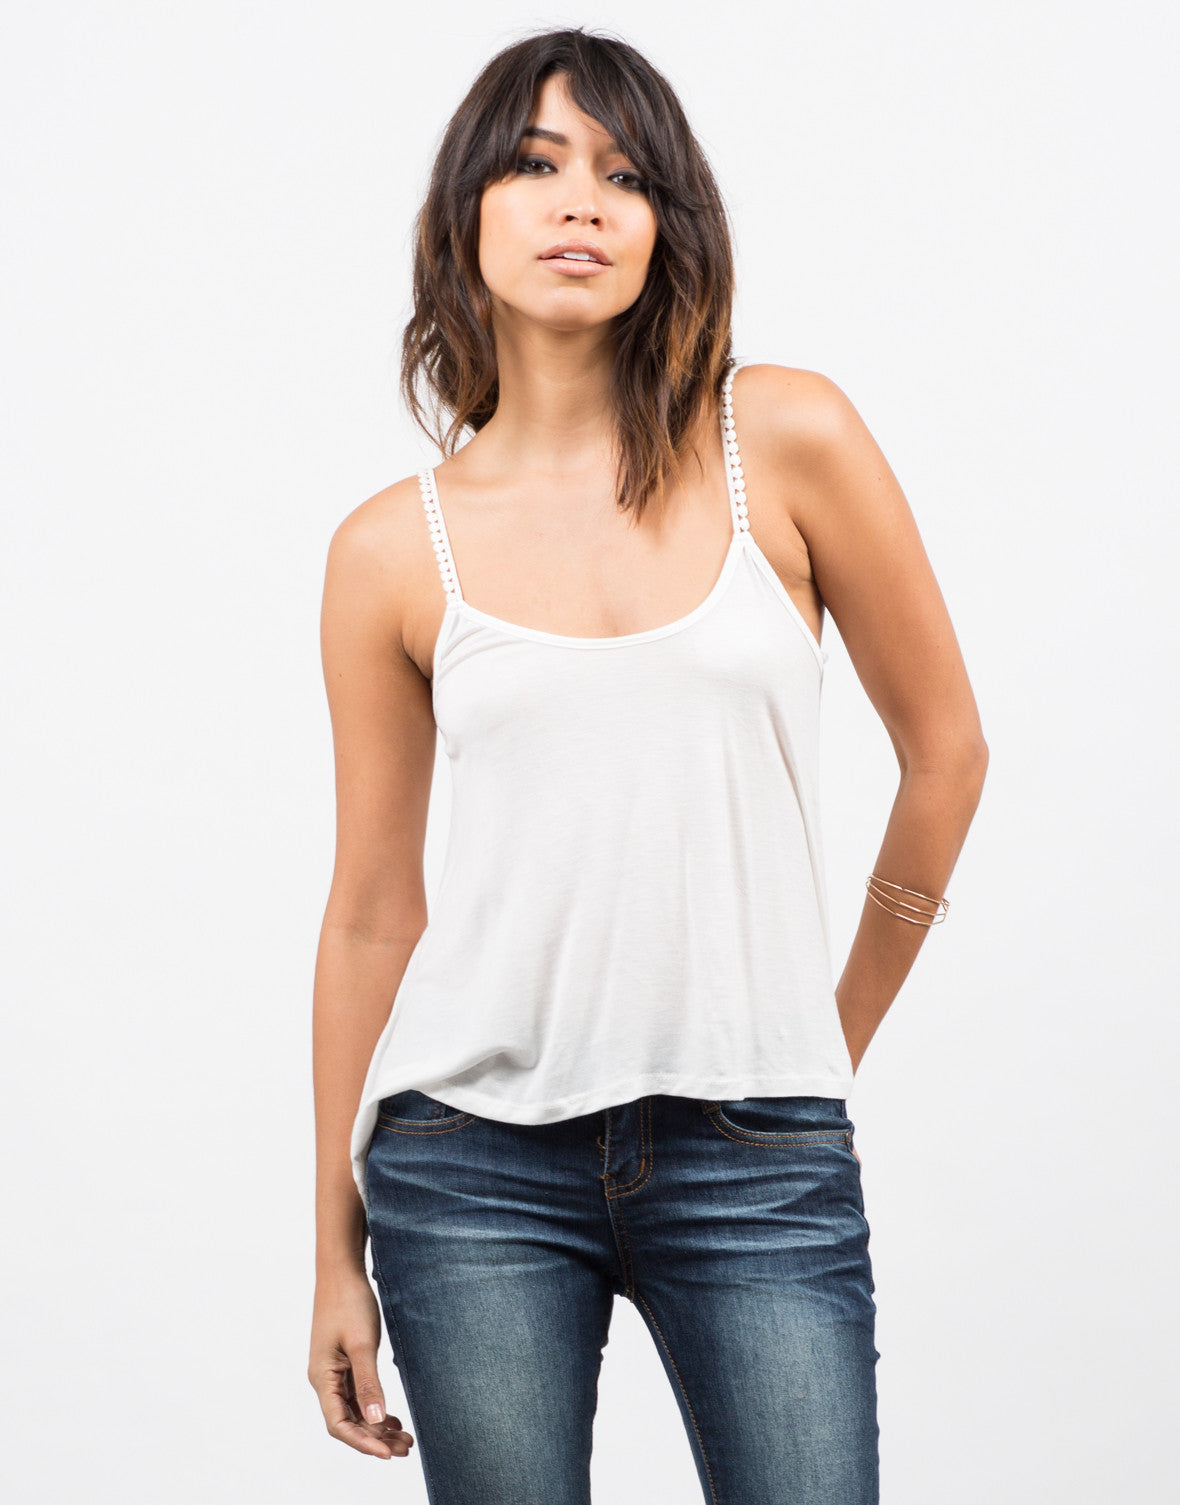 Pom Pom Strapped Cami - Off White Front View